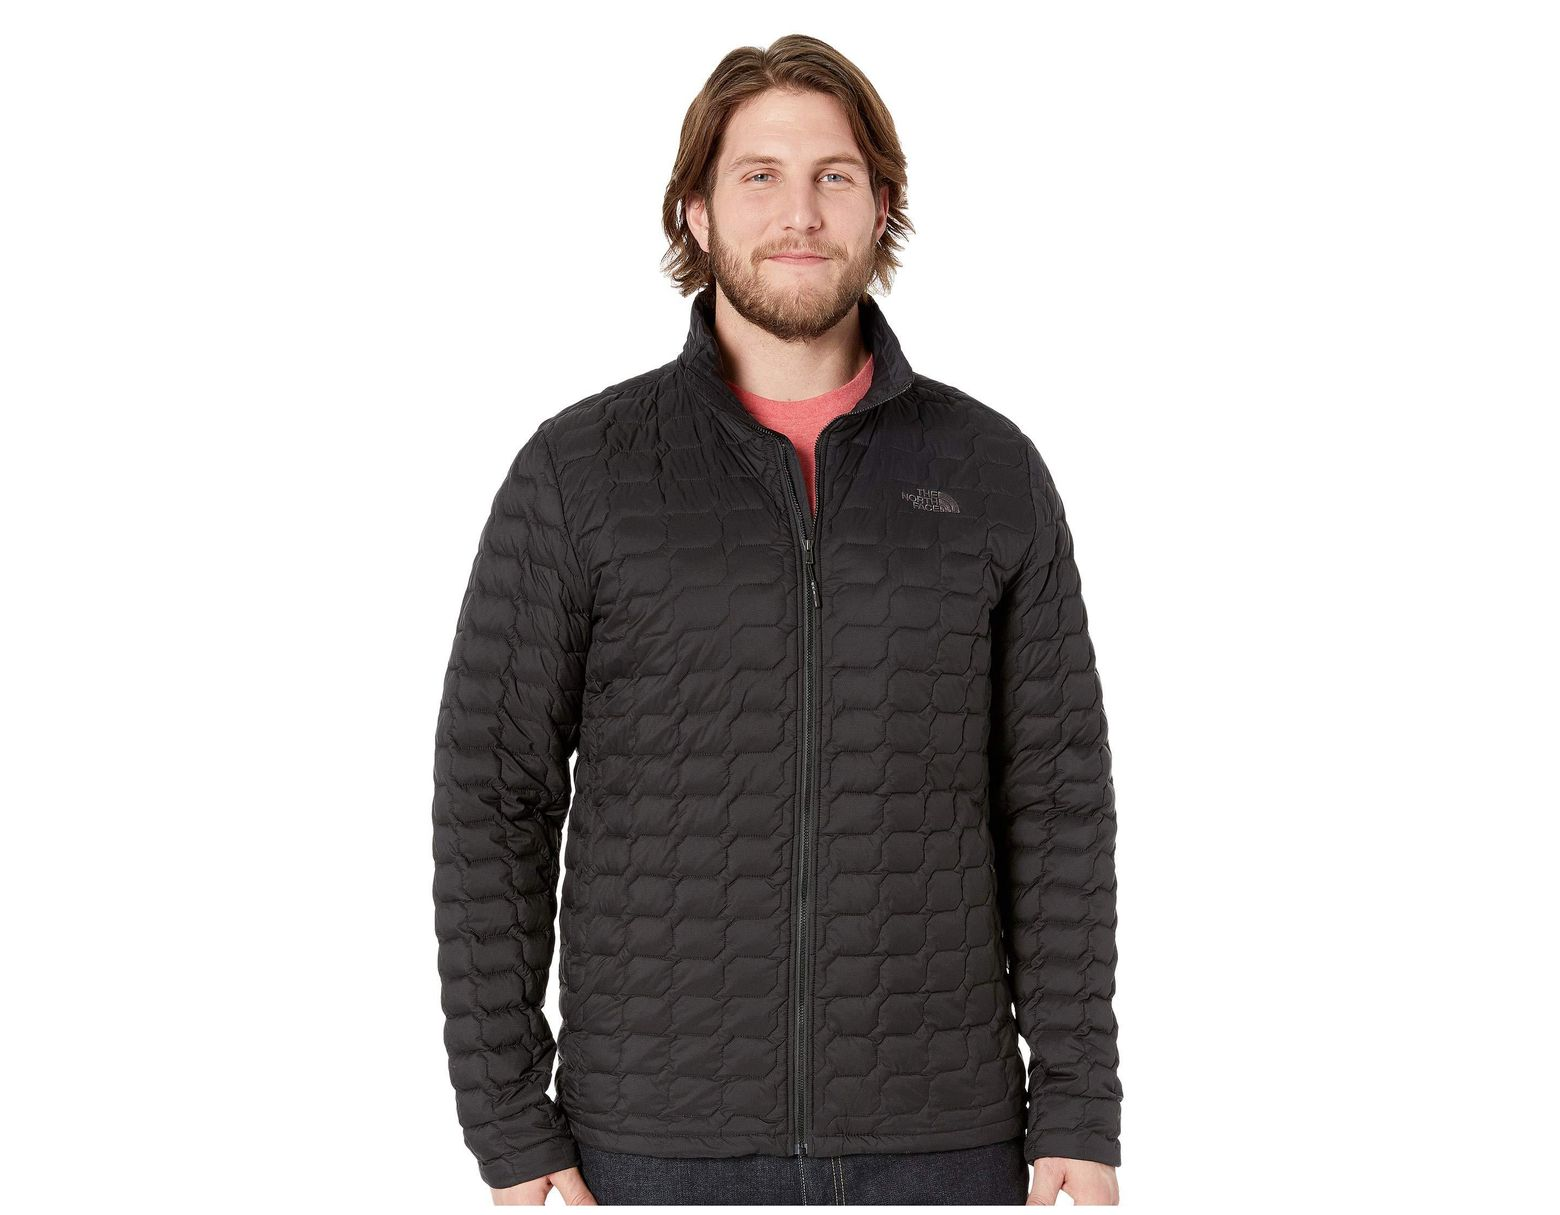 3a37c358 The North Face Thermoball Jacket - Tall in Black for Men - Save 40% - Lyst